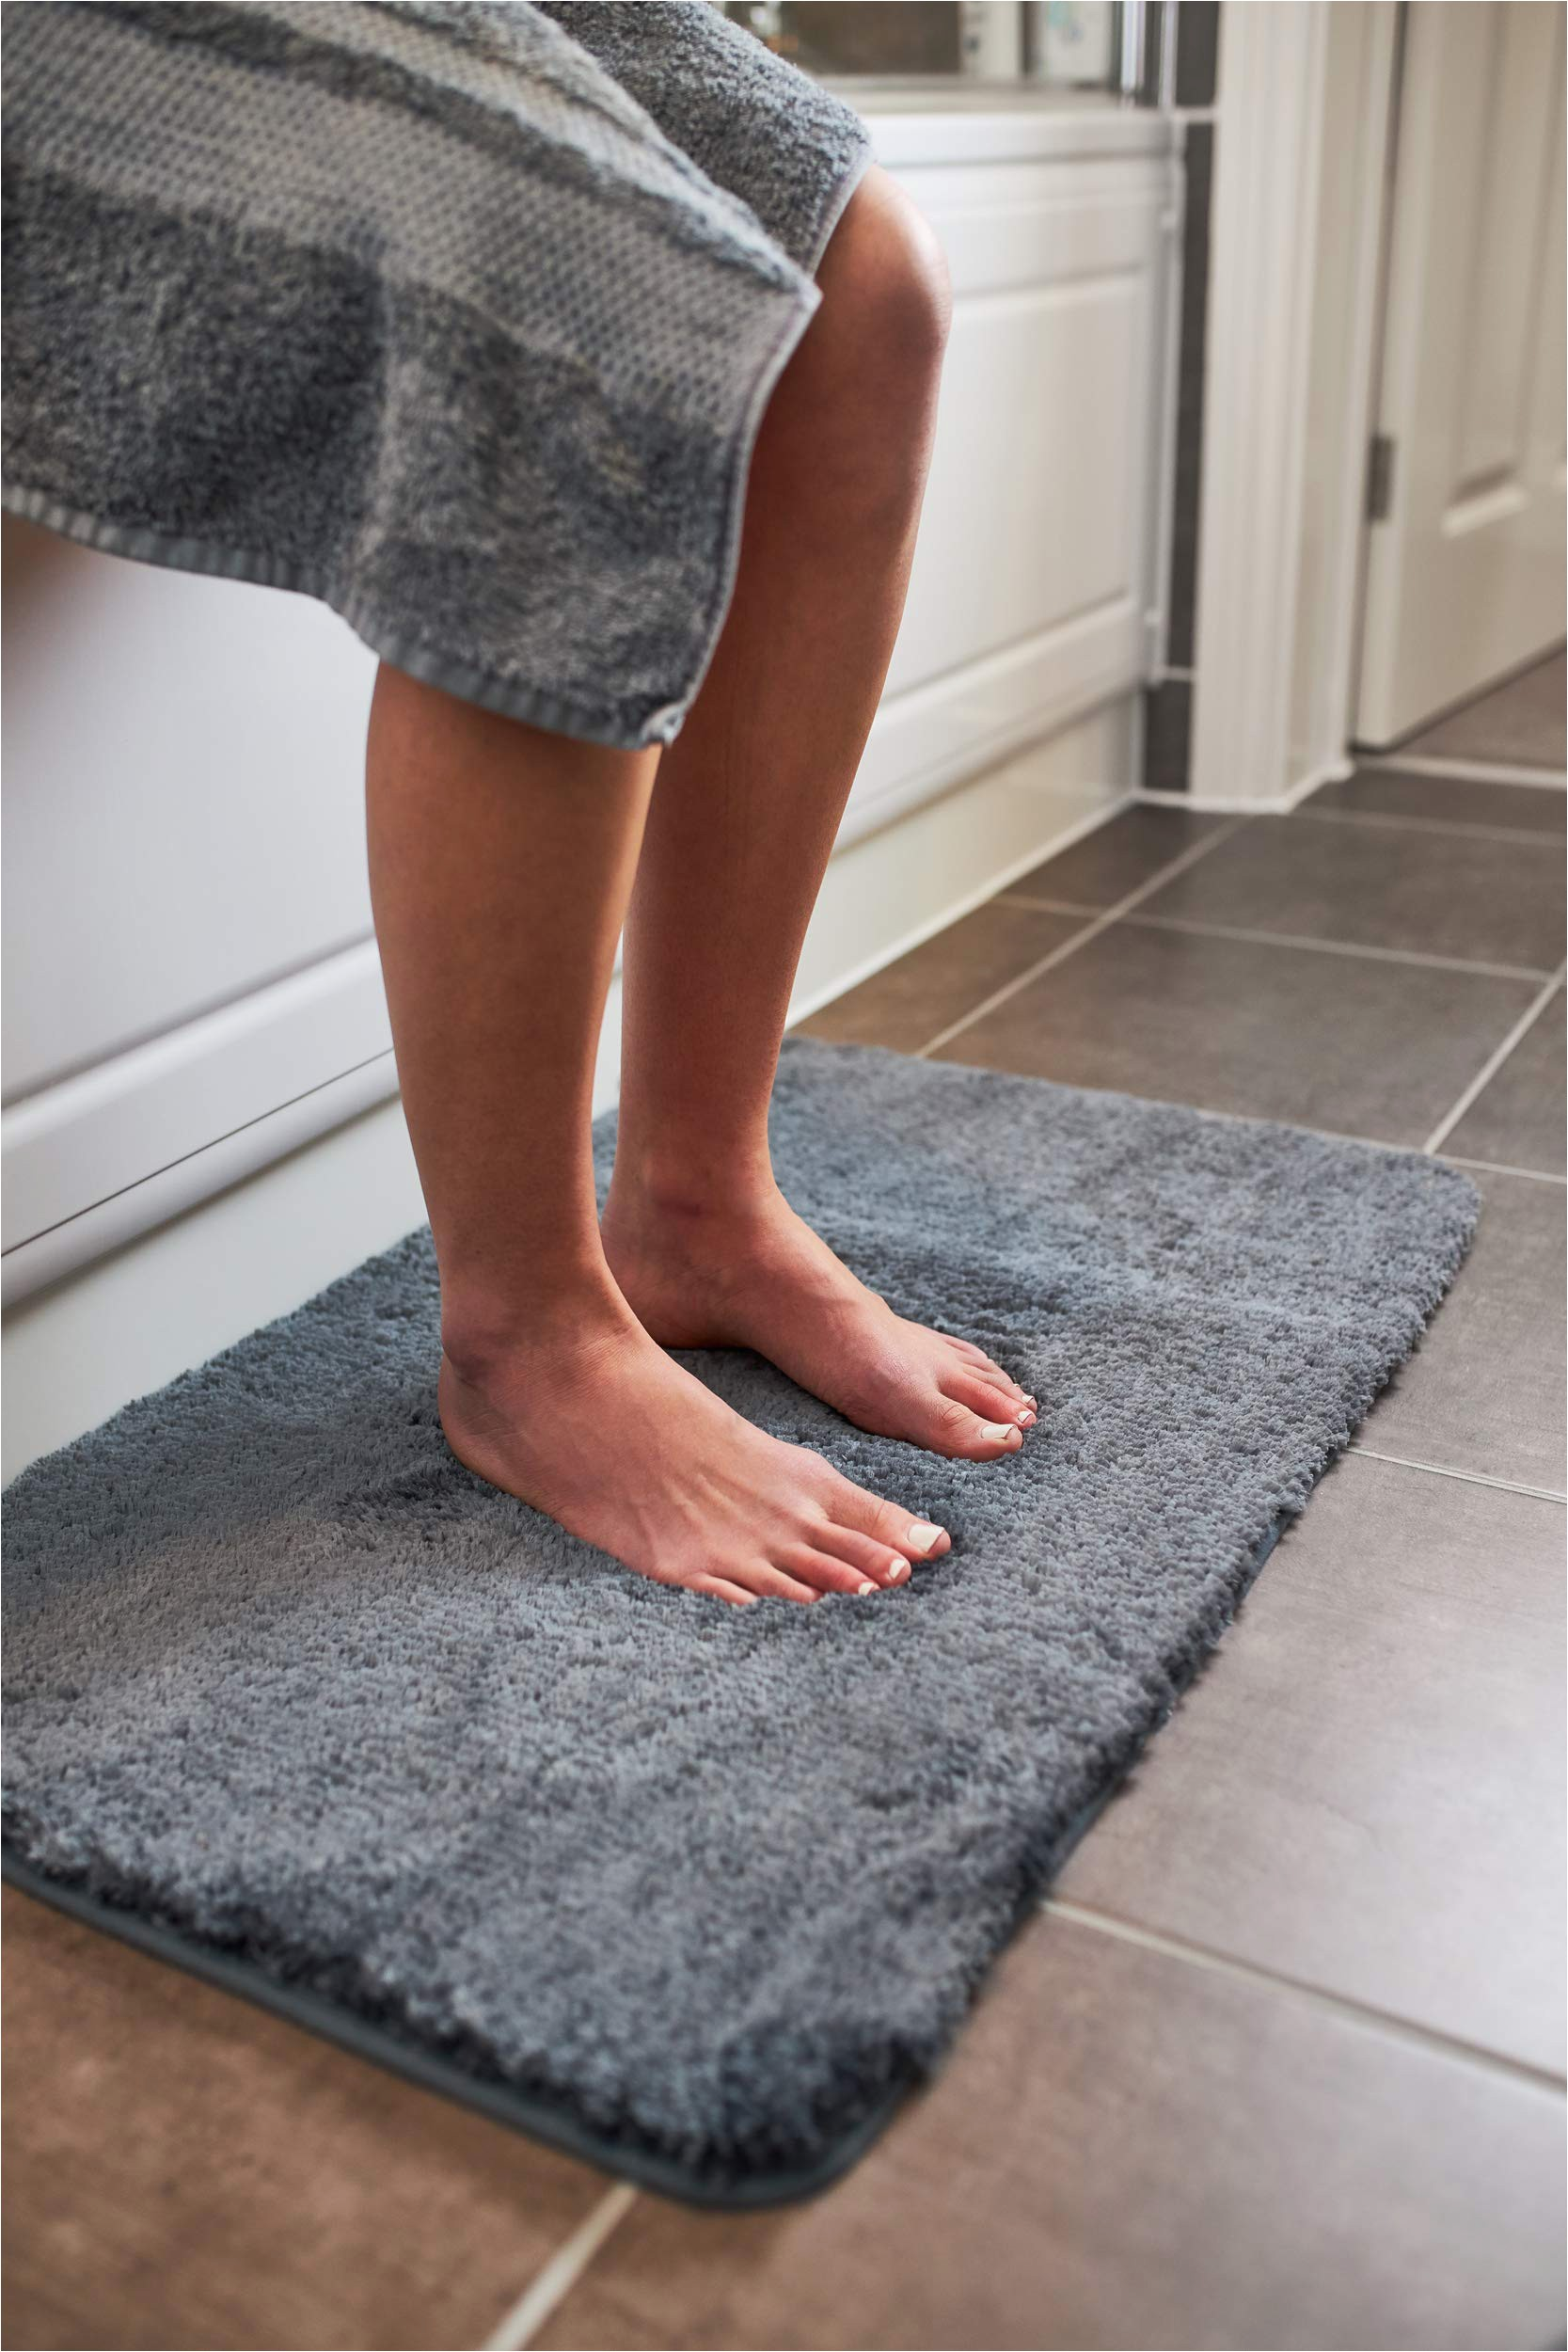 Charcoal Grey Bath Rugs Luxury Grey Bath Mat Microfiber Non Slip Bath Rug with Super soft Absorbent Dry Fast Design for Bath and Shower